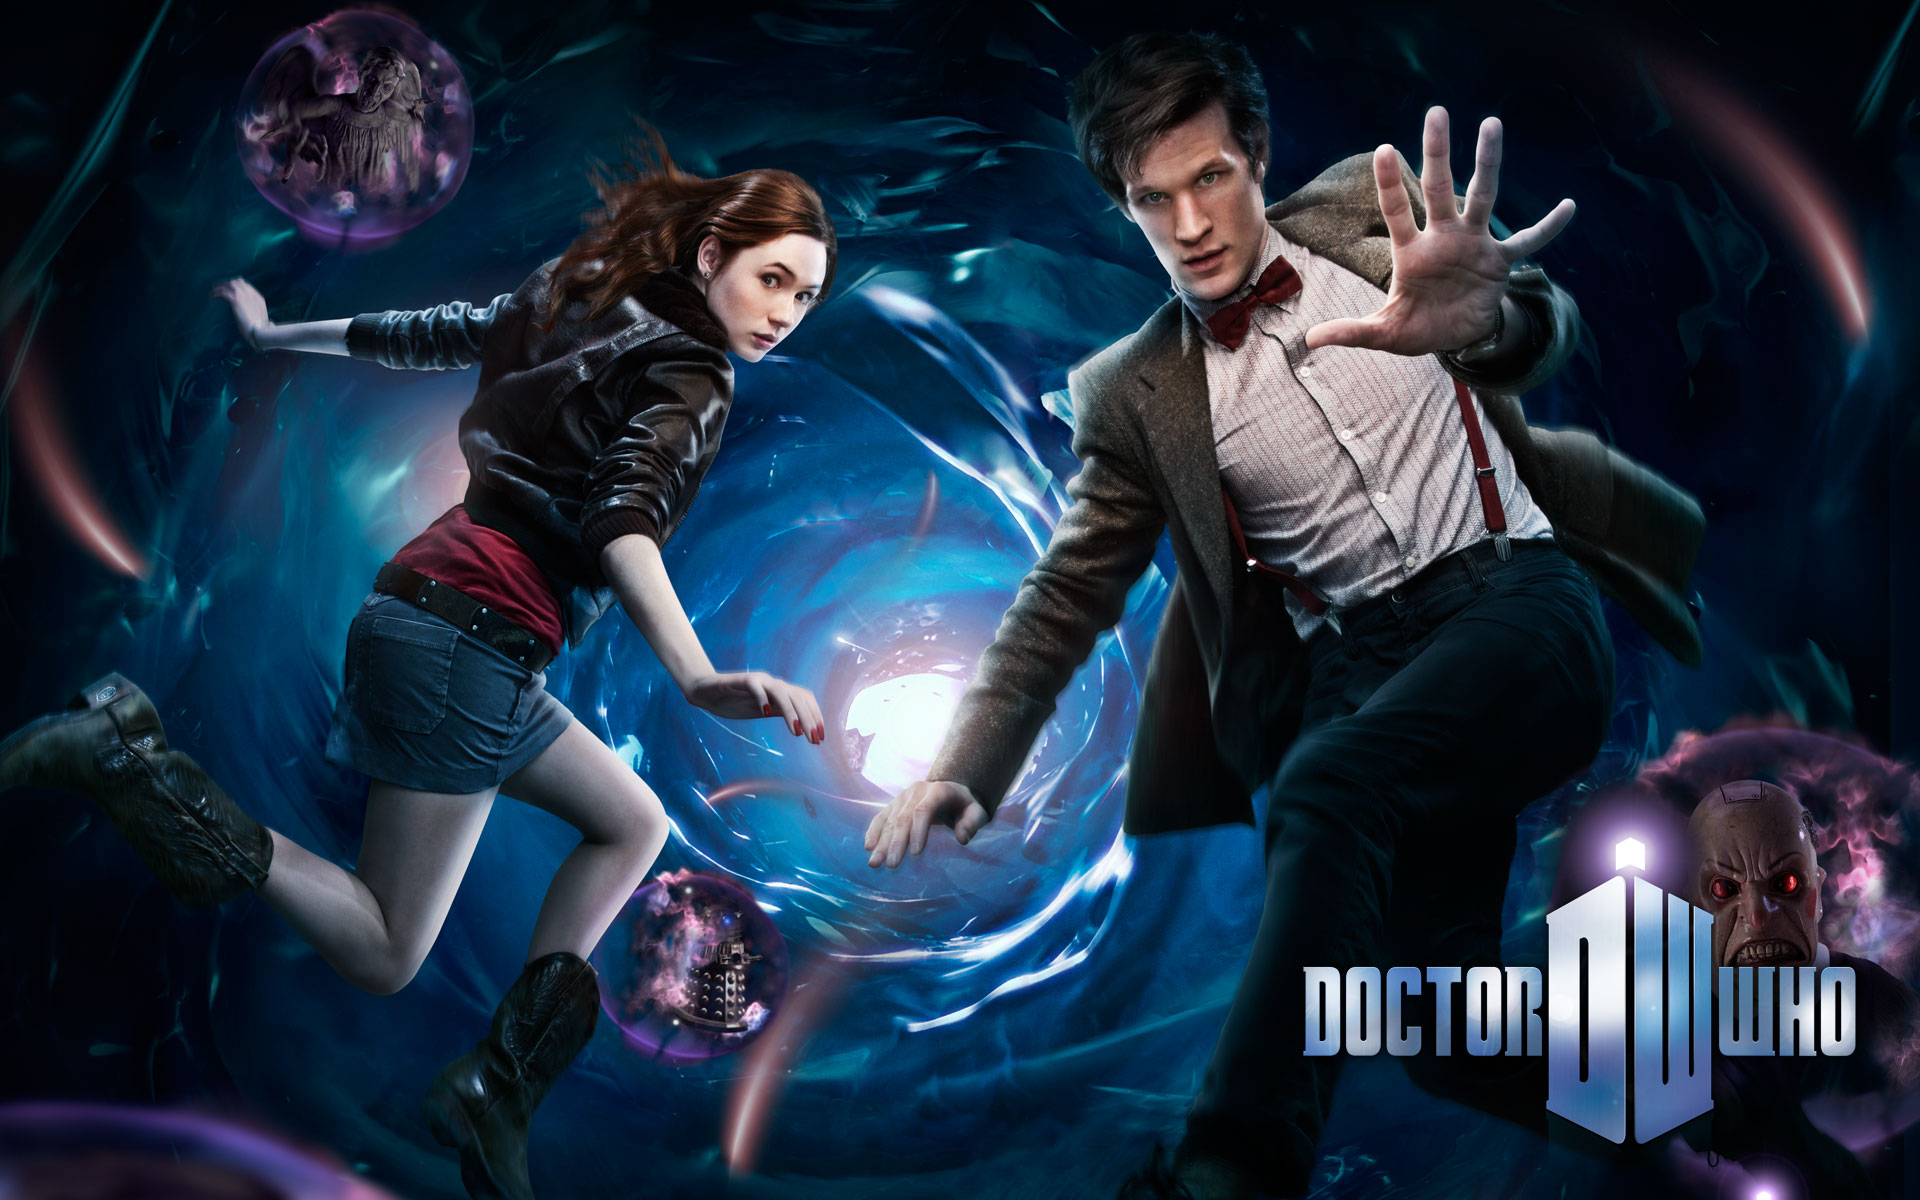 Doctor Who Wallpaper 1920x1200